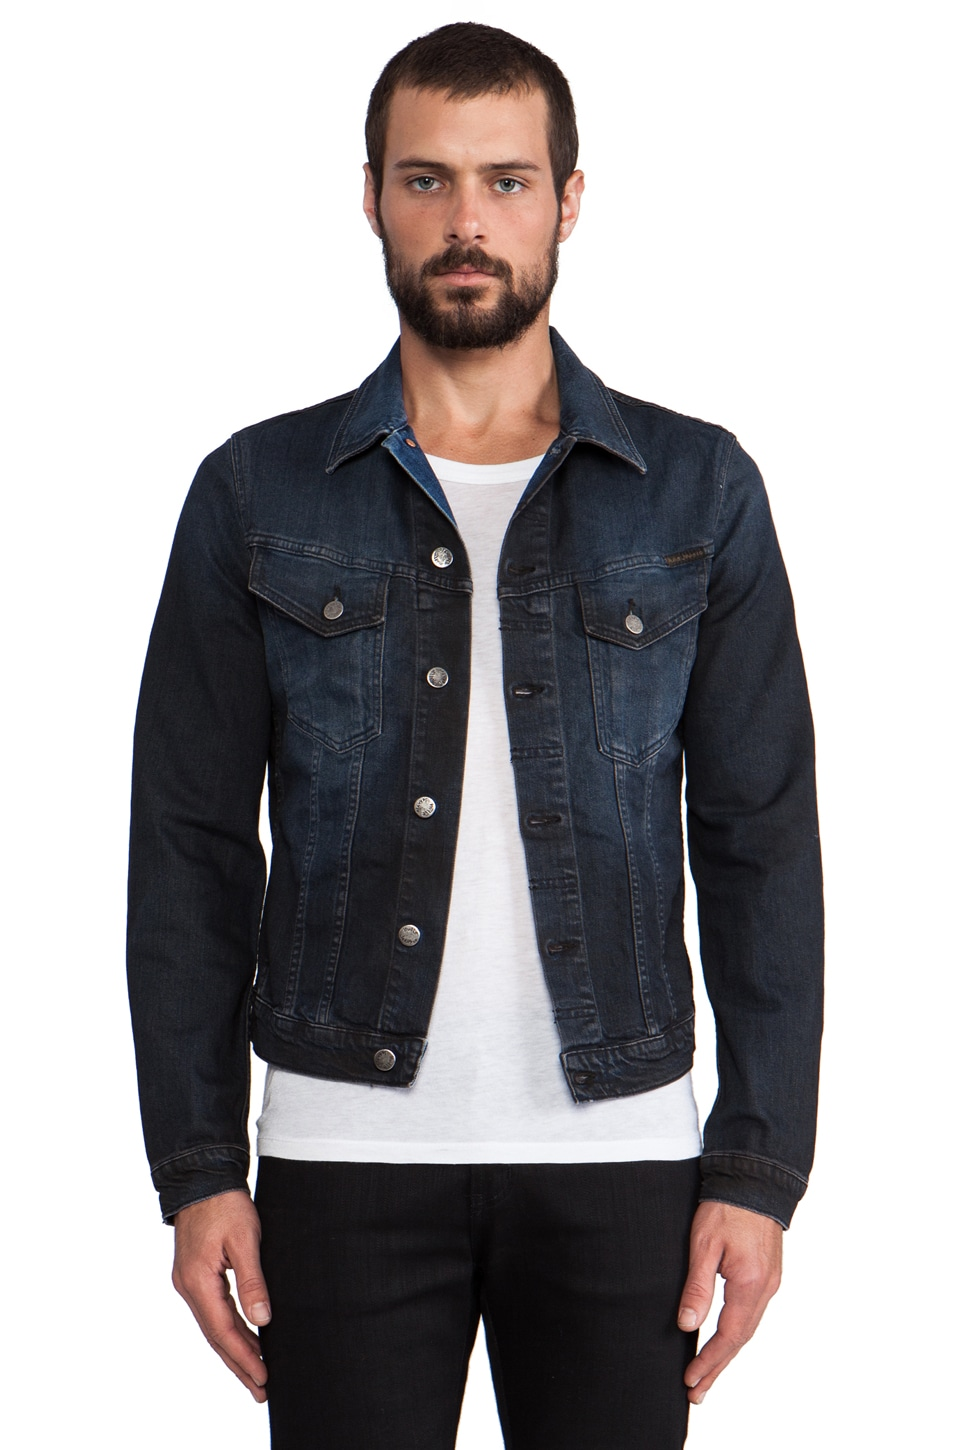 Nudie Jeans Perry Denim Jacket in Org. Black on Blue